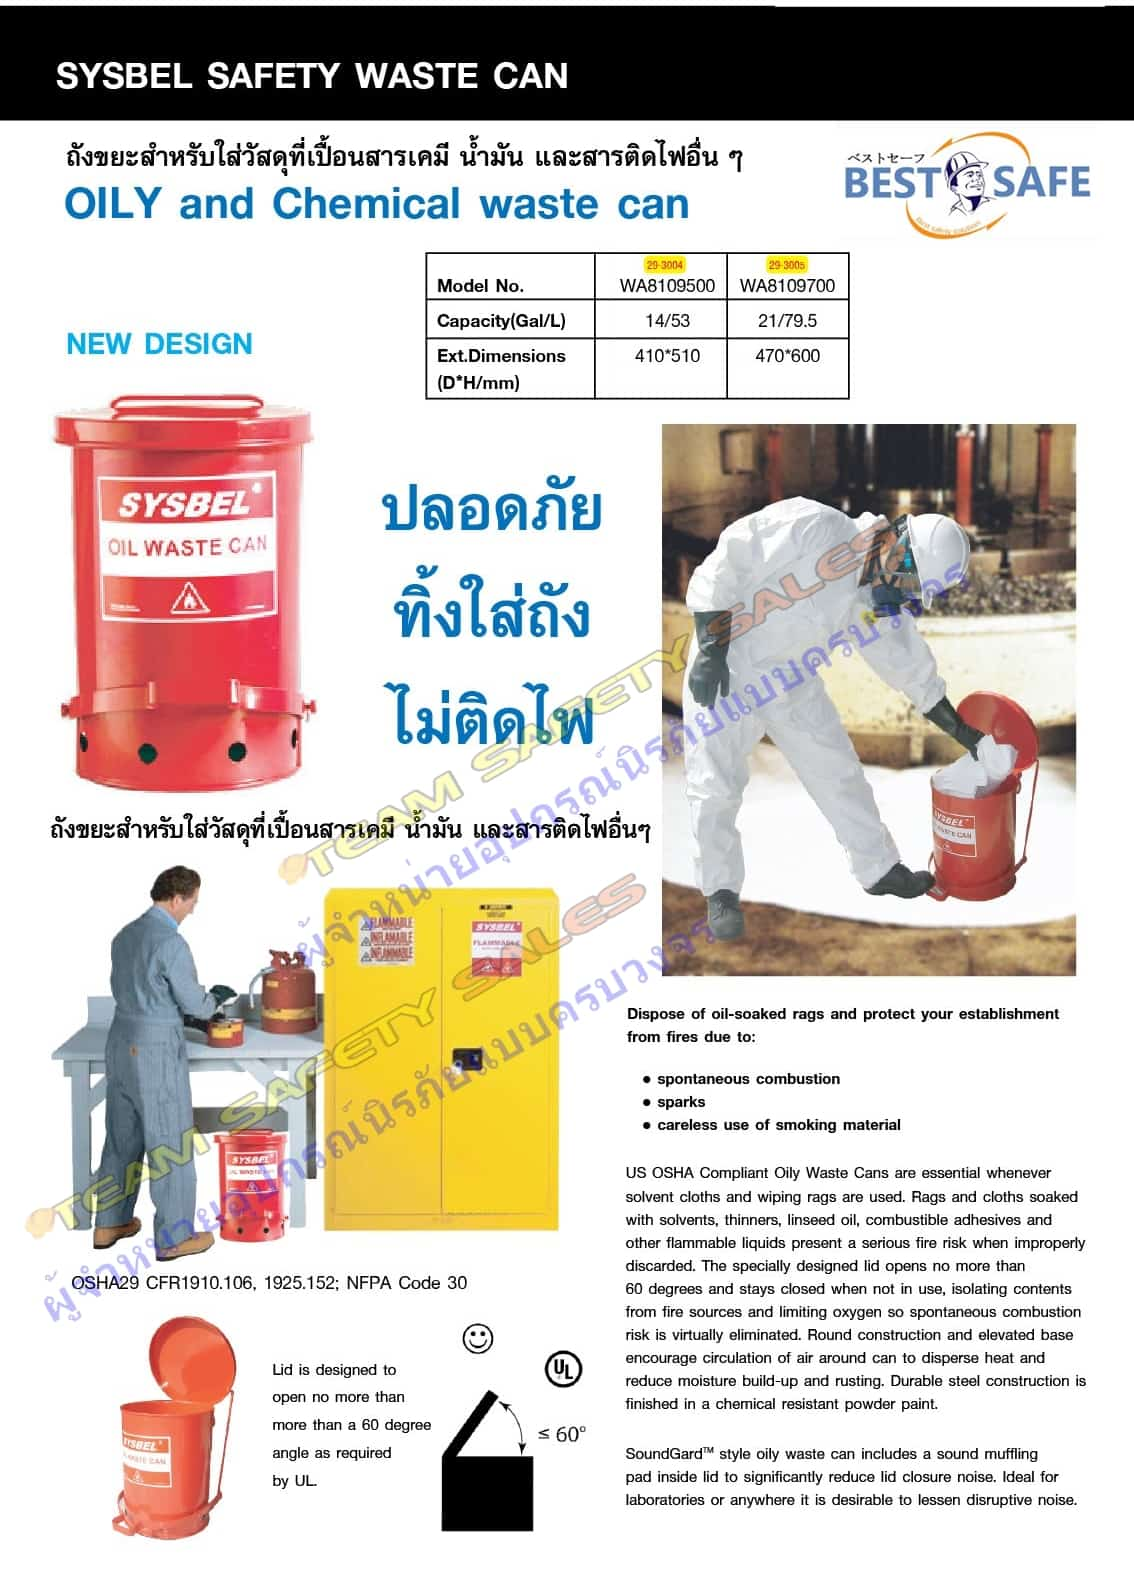 http://www.supersafetythailand.com/wp-content/uploads/2017/05/Sec29-p1-2-safety-waste-can-Copy.jpg